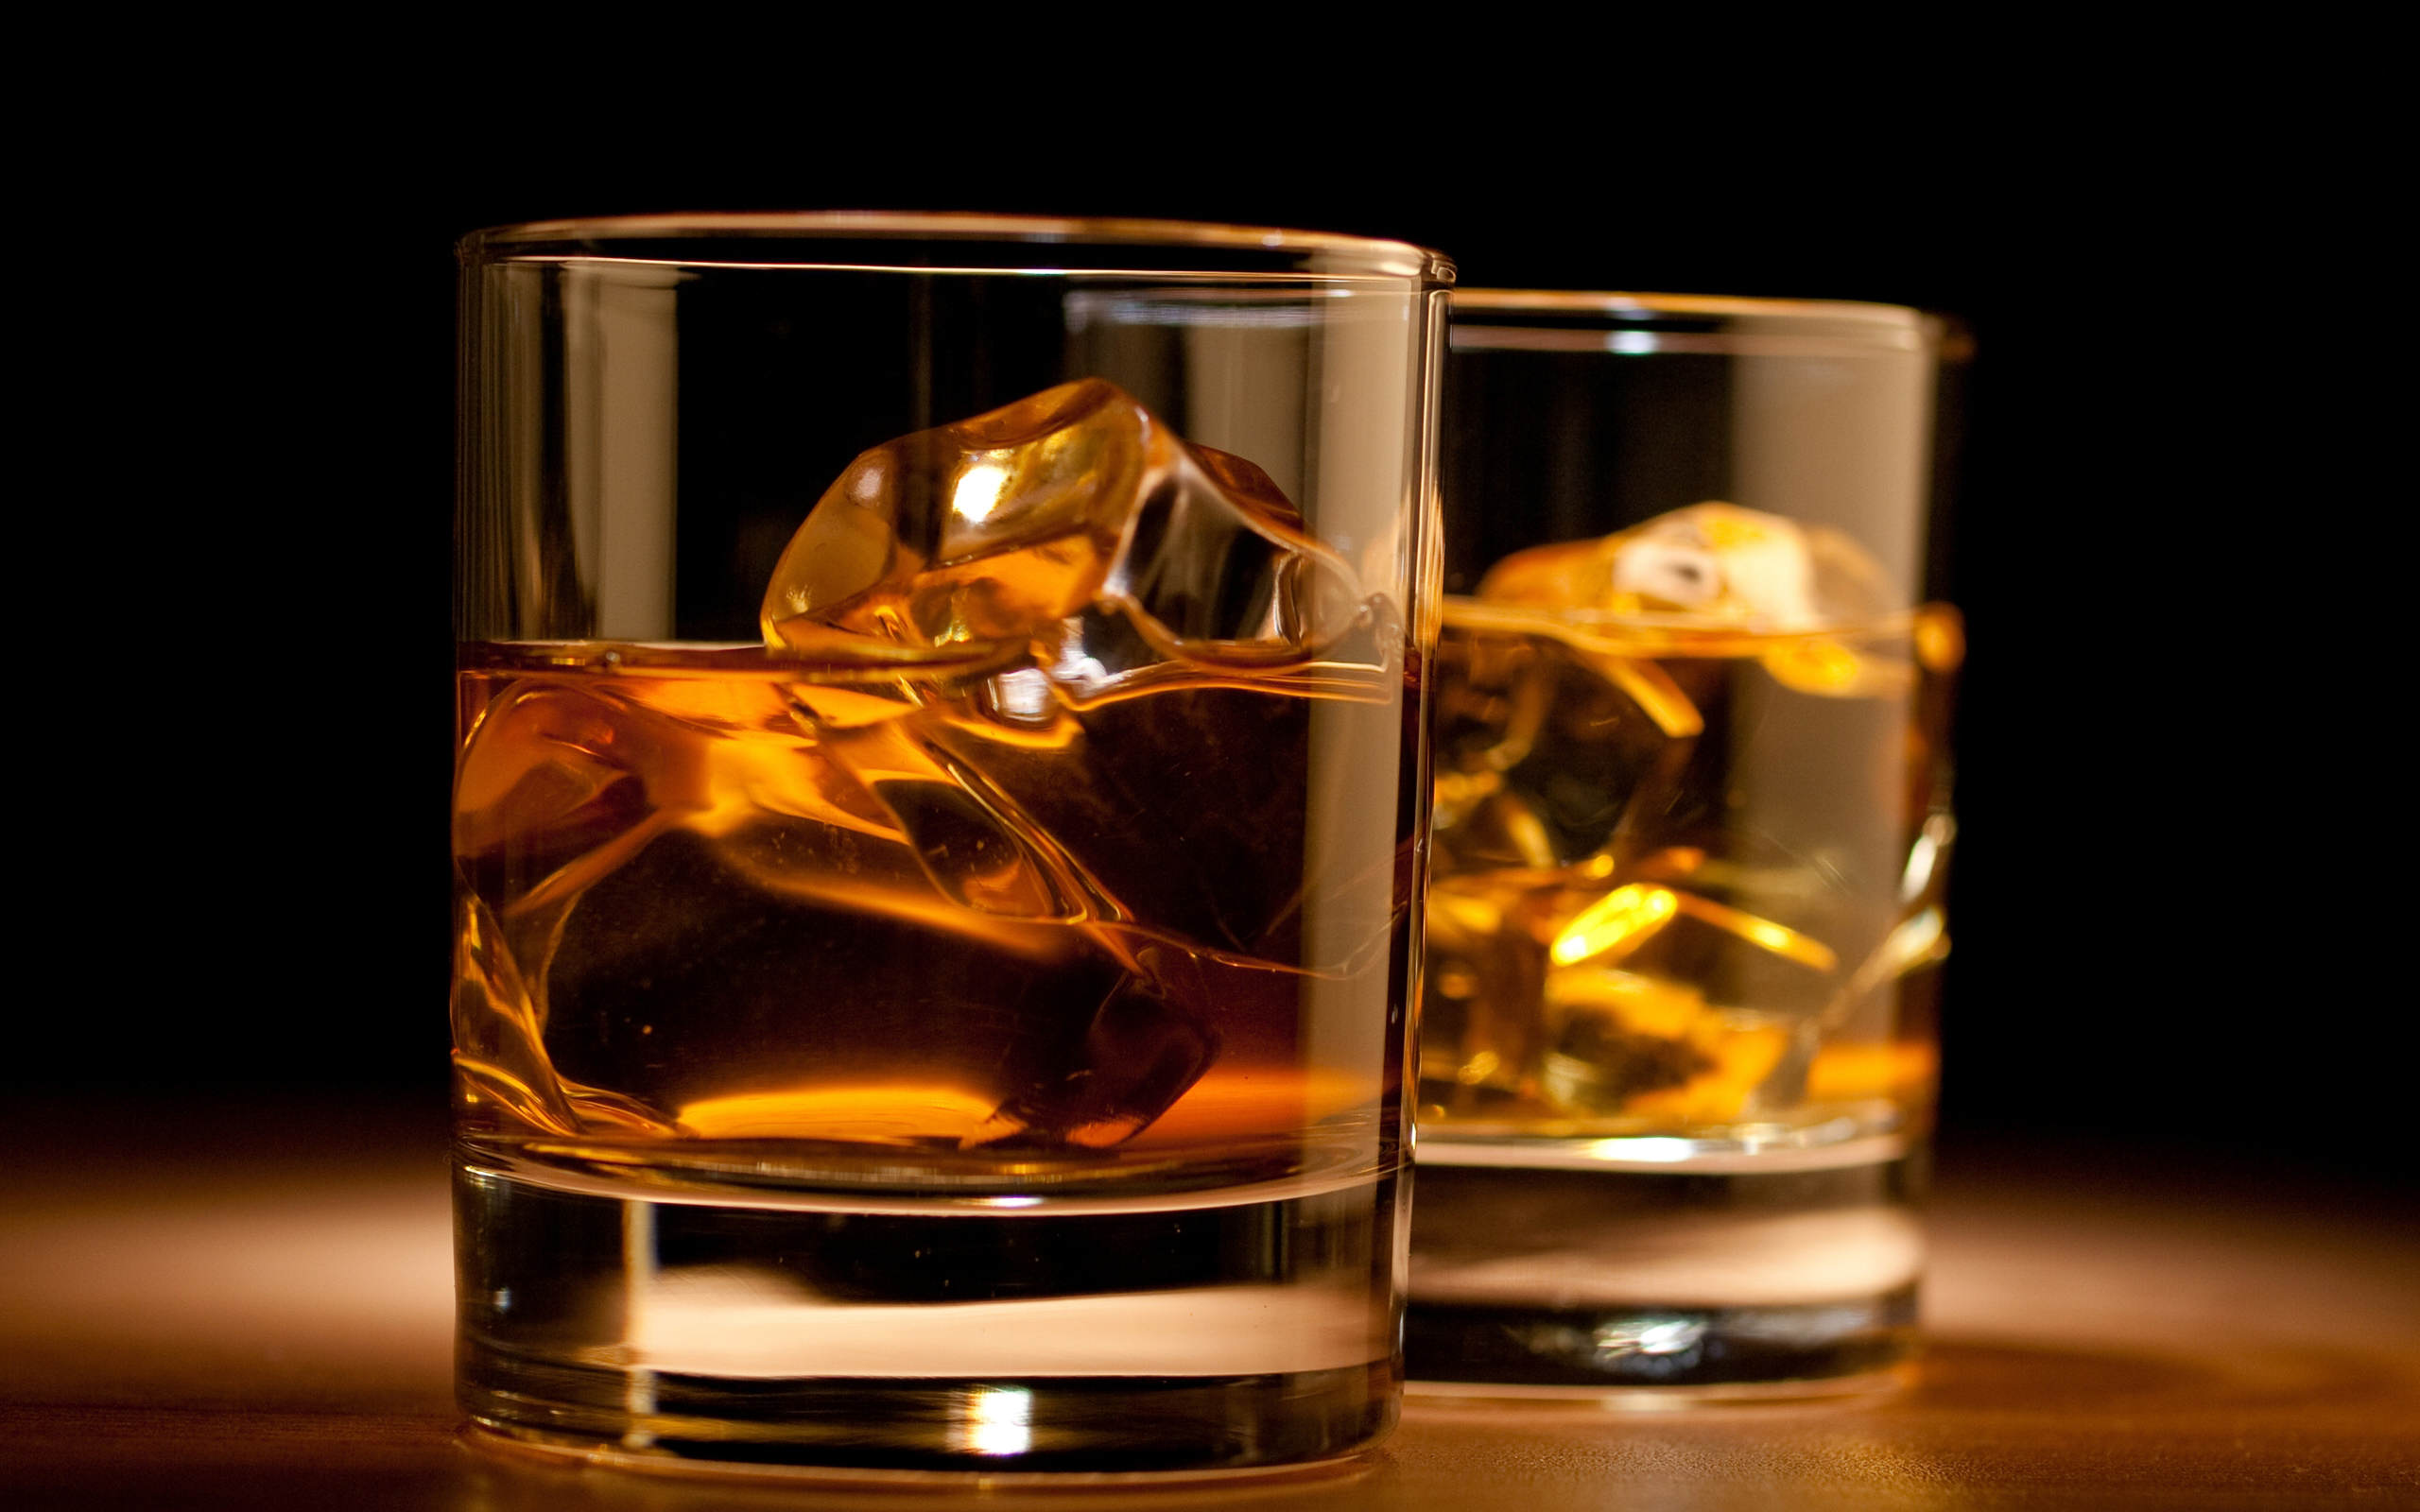 whisky-glass-wallpaper-2